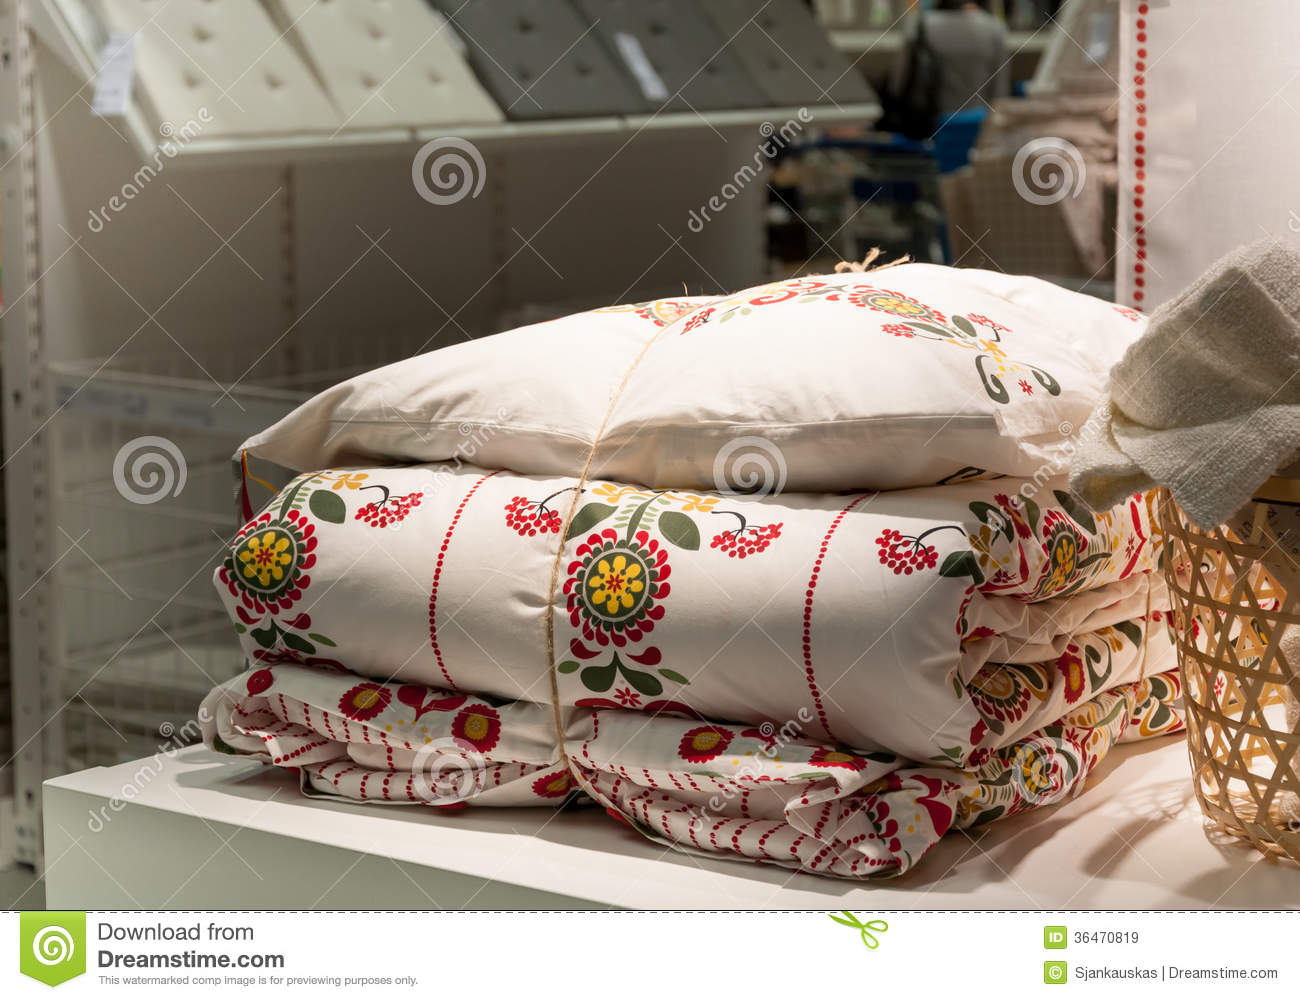 Household Goods And Bedding Shop Stock Image - Image of ...